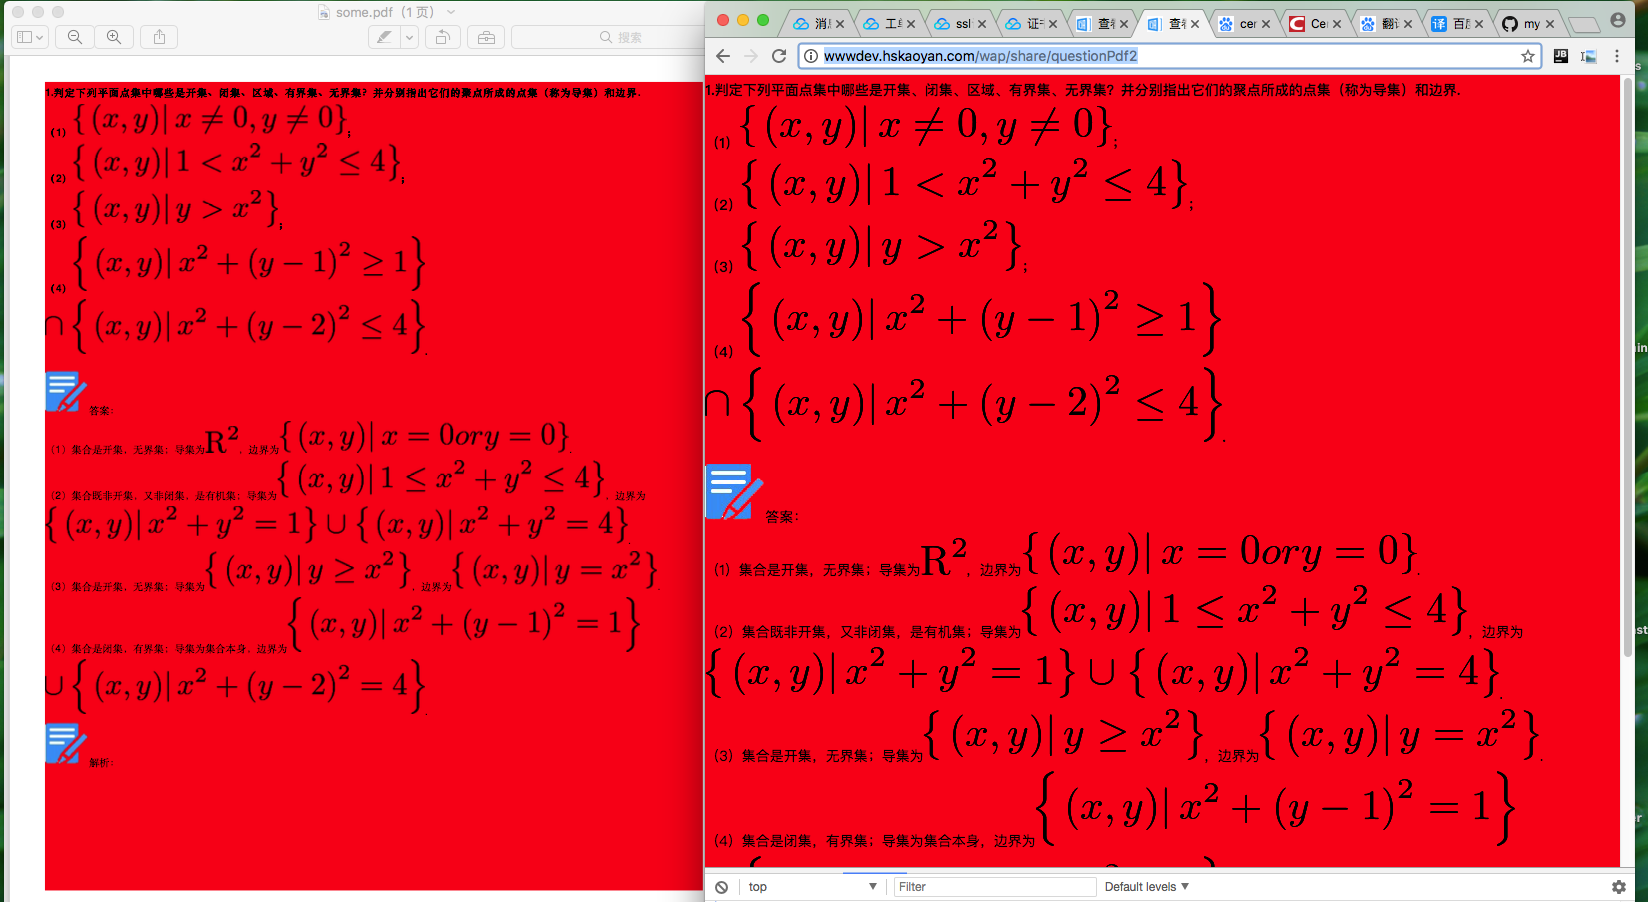 my webpage convert to pdf latex image disappear · Issue